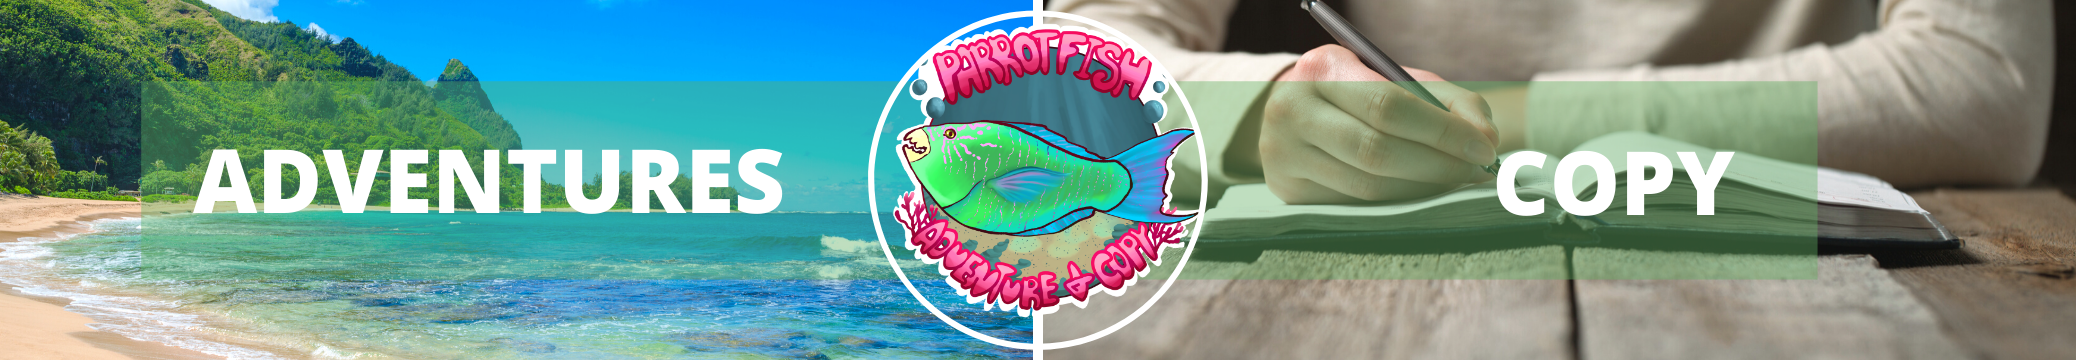 Parrotfish Adventures and Copy